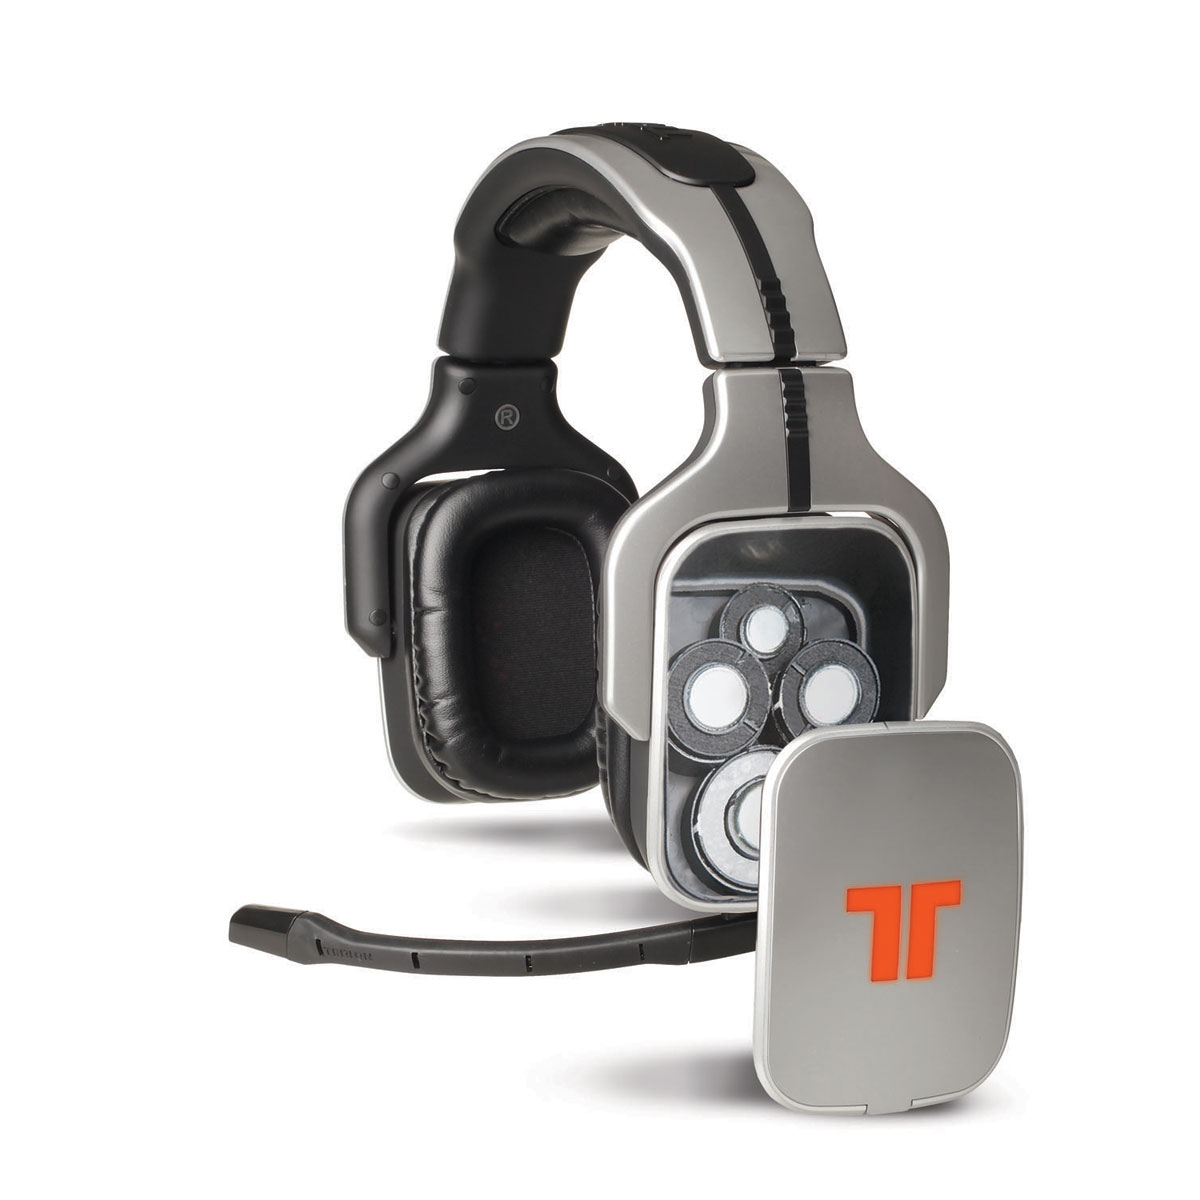 tritton ax pro pc mac ps3 xbox 360 ax611 achat. Black Bedroom Furniture Sets. Home Design Ideas